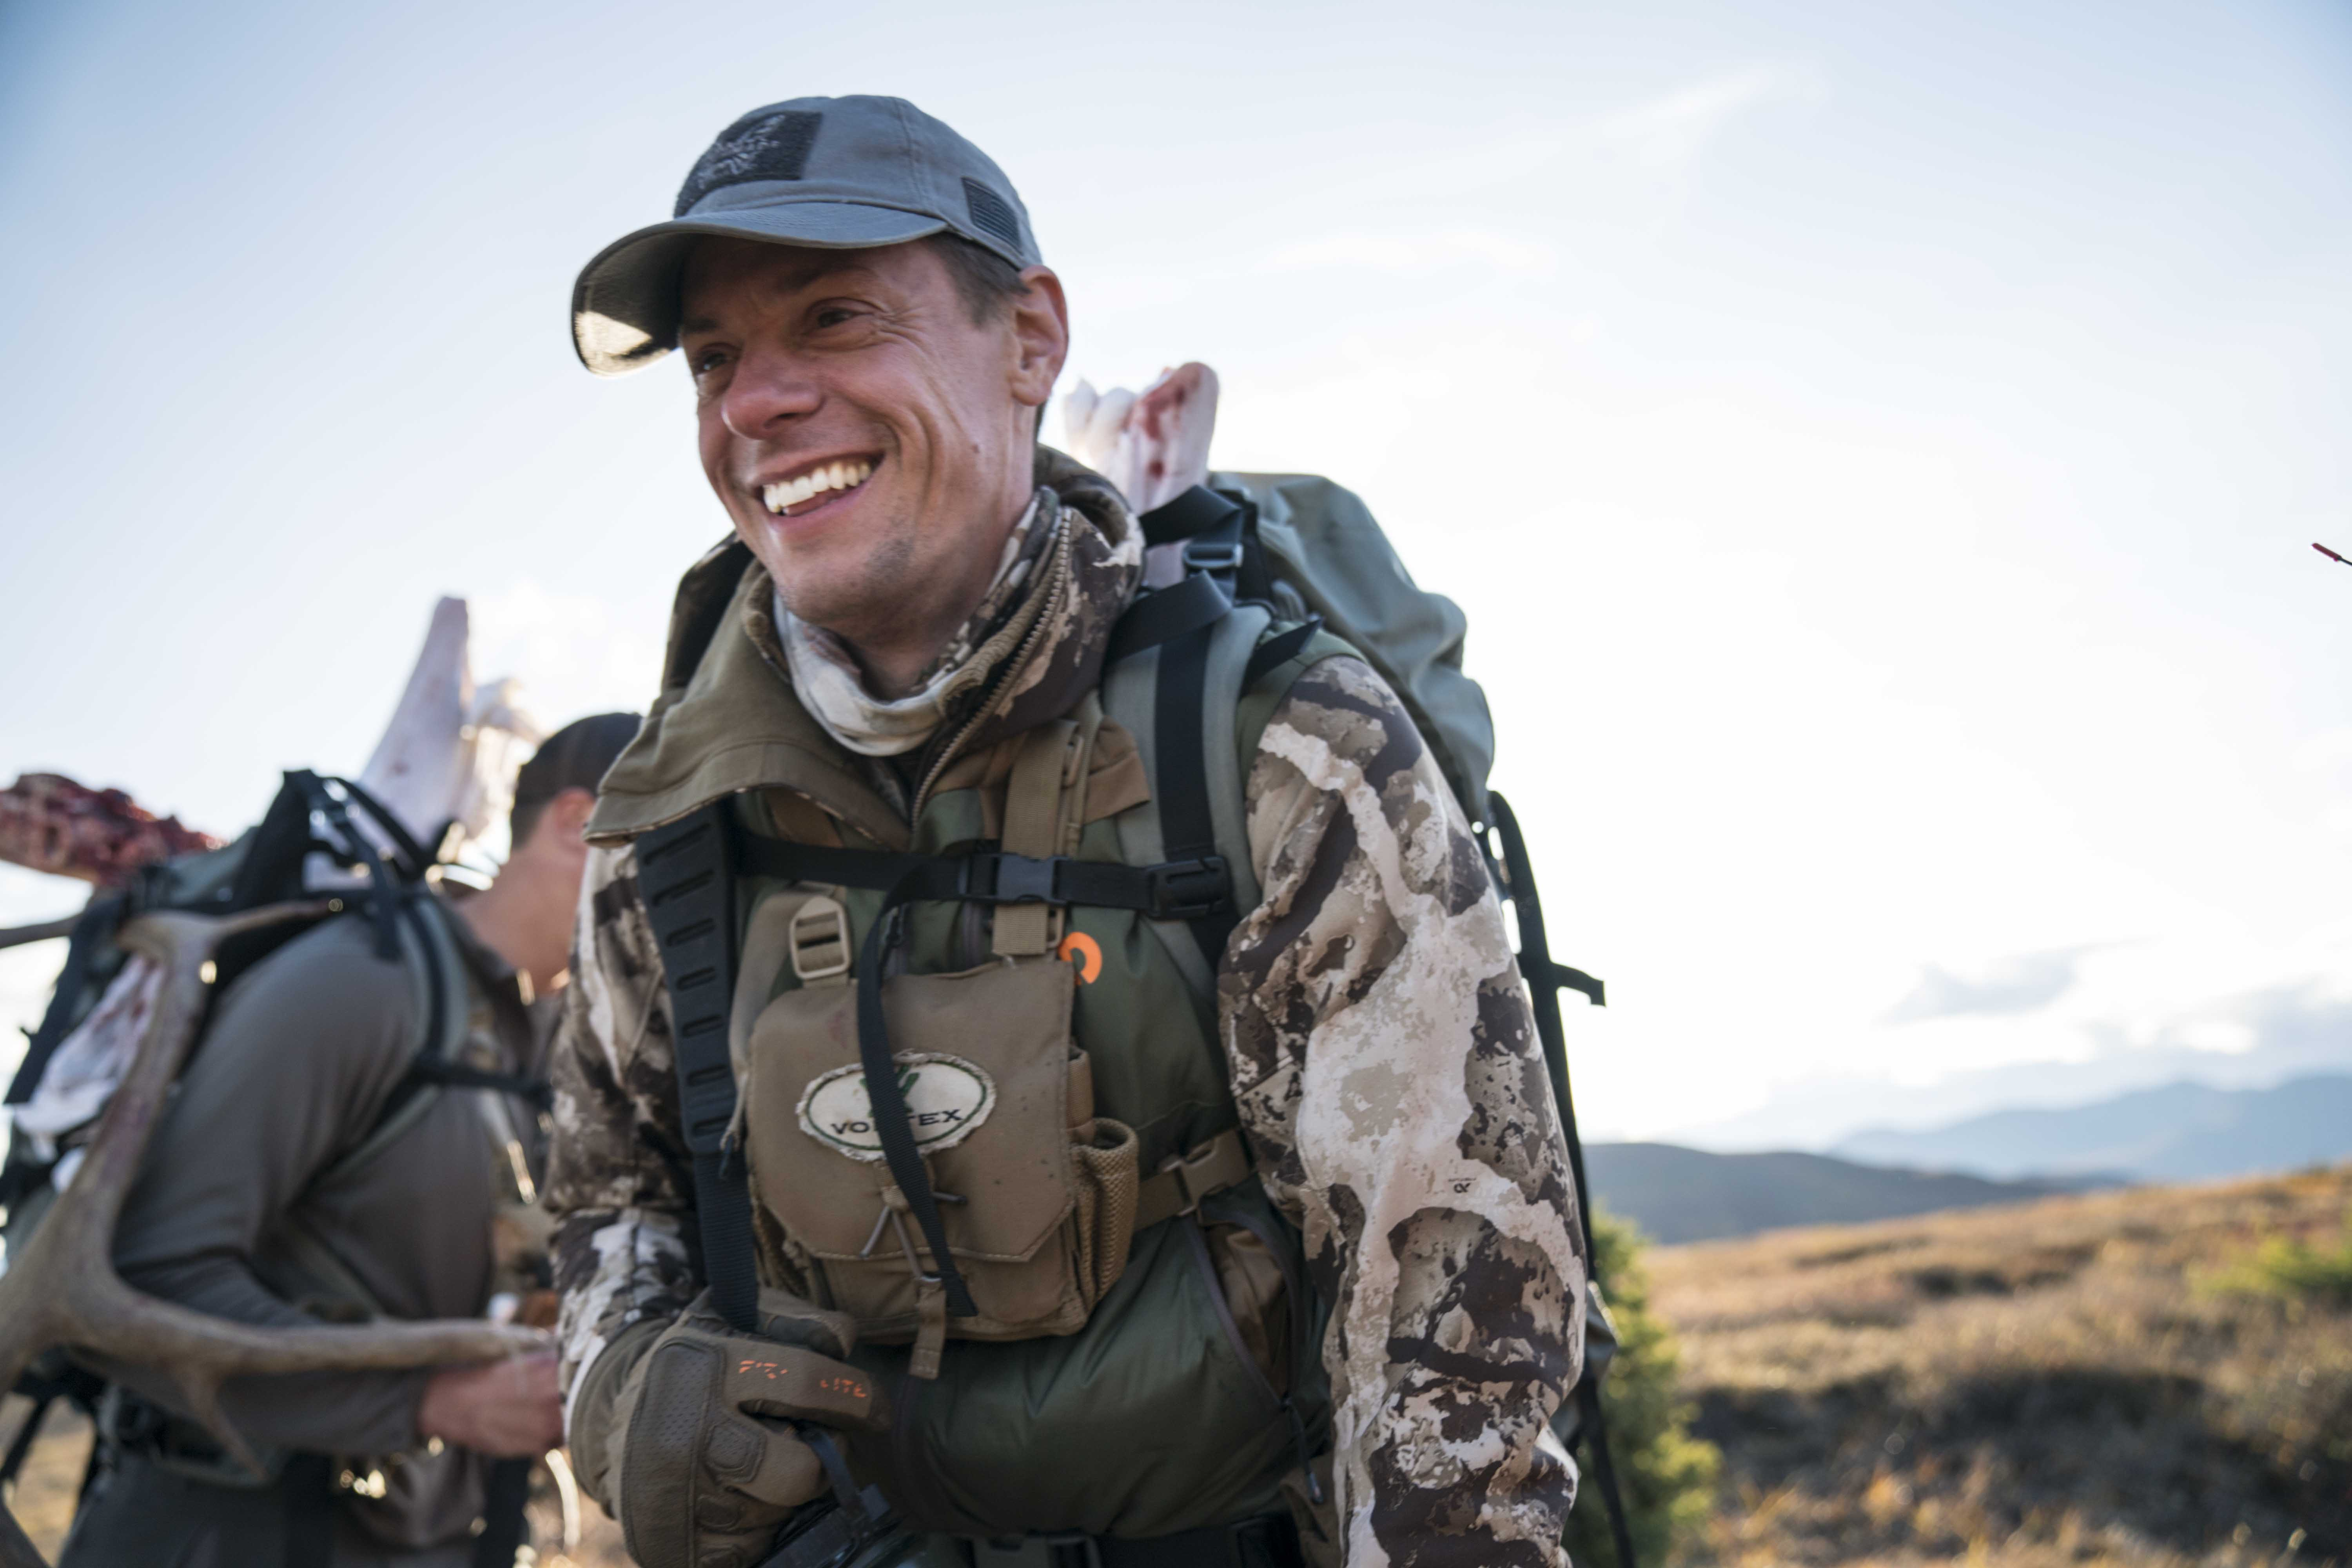 MeatEater Inc. Acquires First Lite, Adds Hunting Retail to Growing Portfolio | GearJunkie